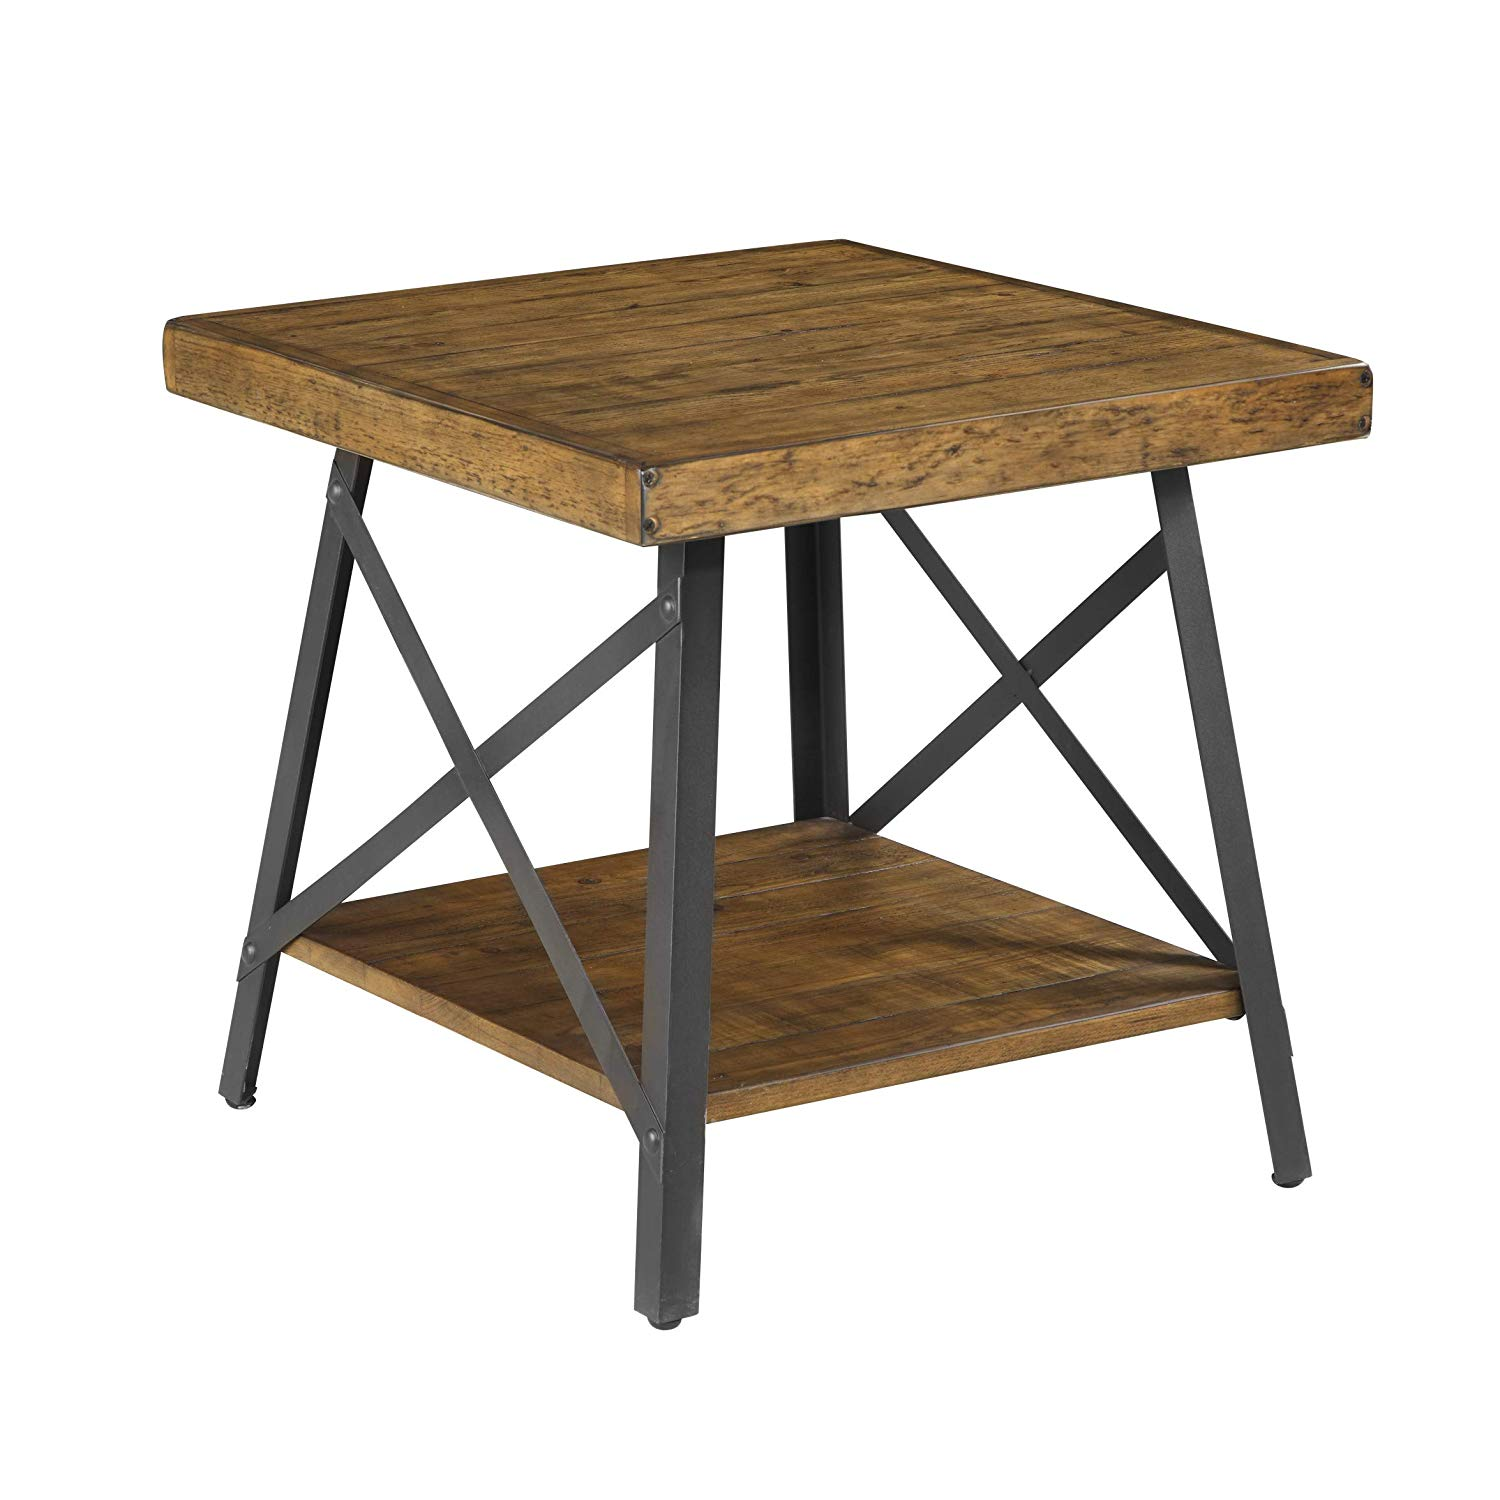 emerald home chandler rustic wood end table with solid metal accent drawers top base and open storage shelf kitchen dining flannel backed tablecloth pier candles pottery barn